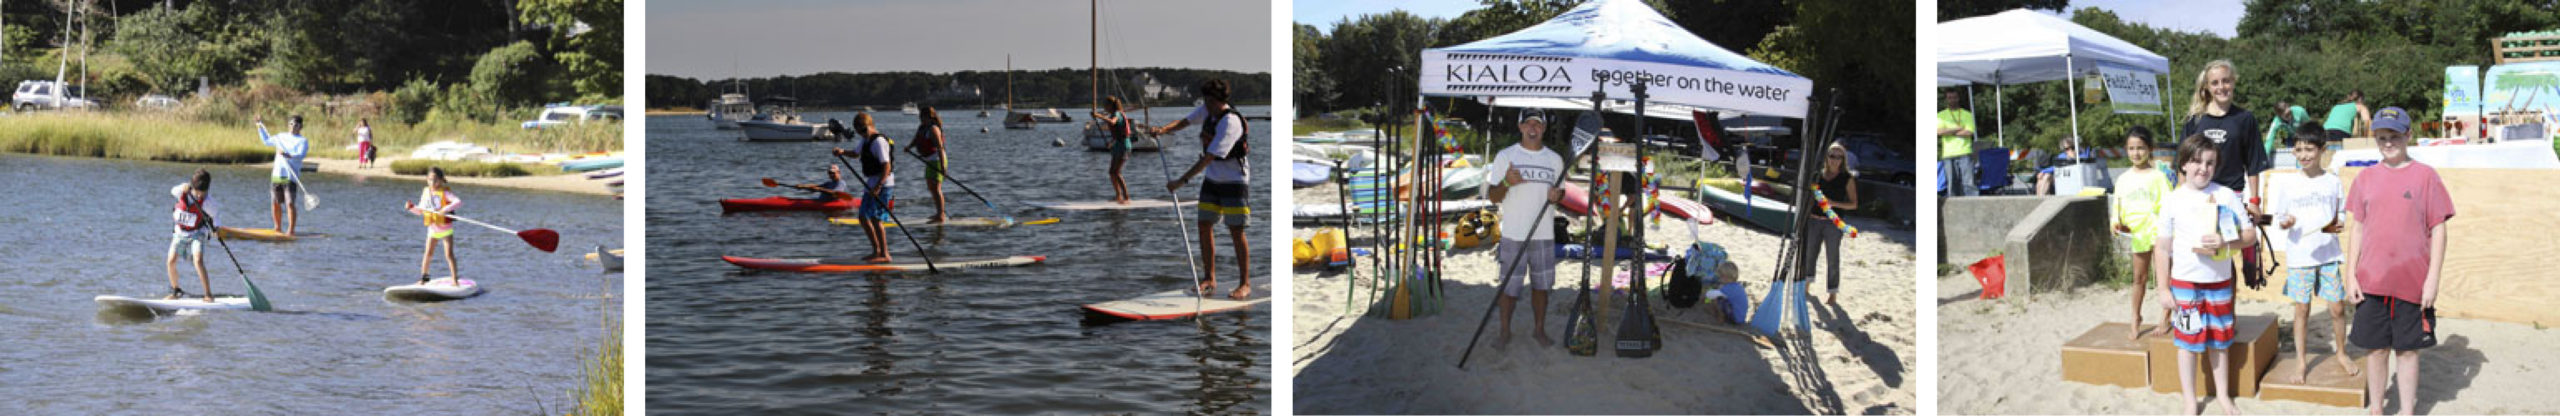 Paddle for the Bays Race